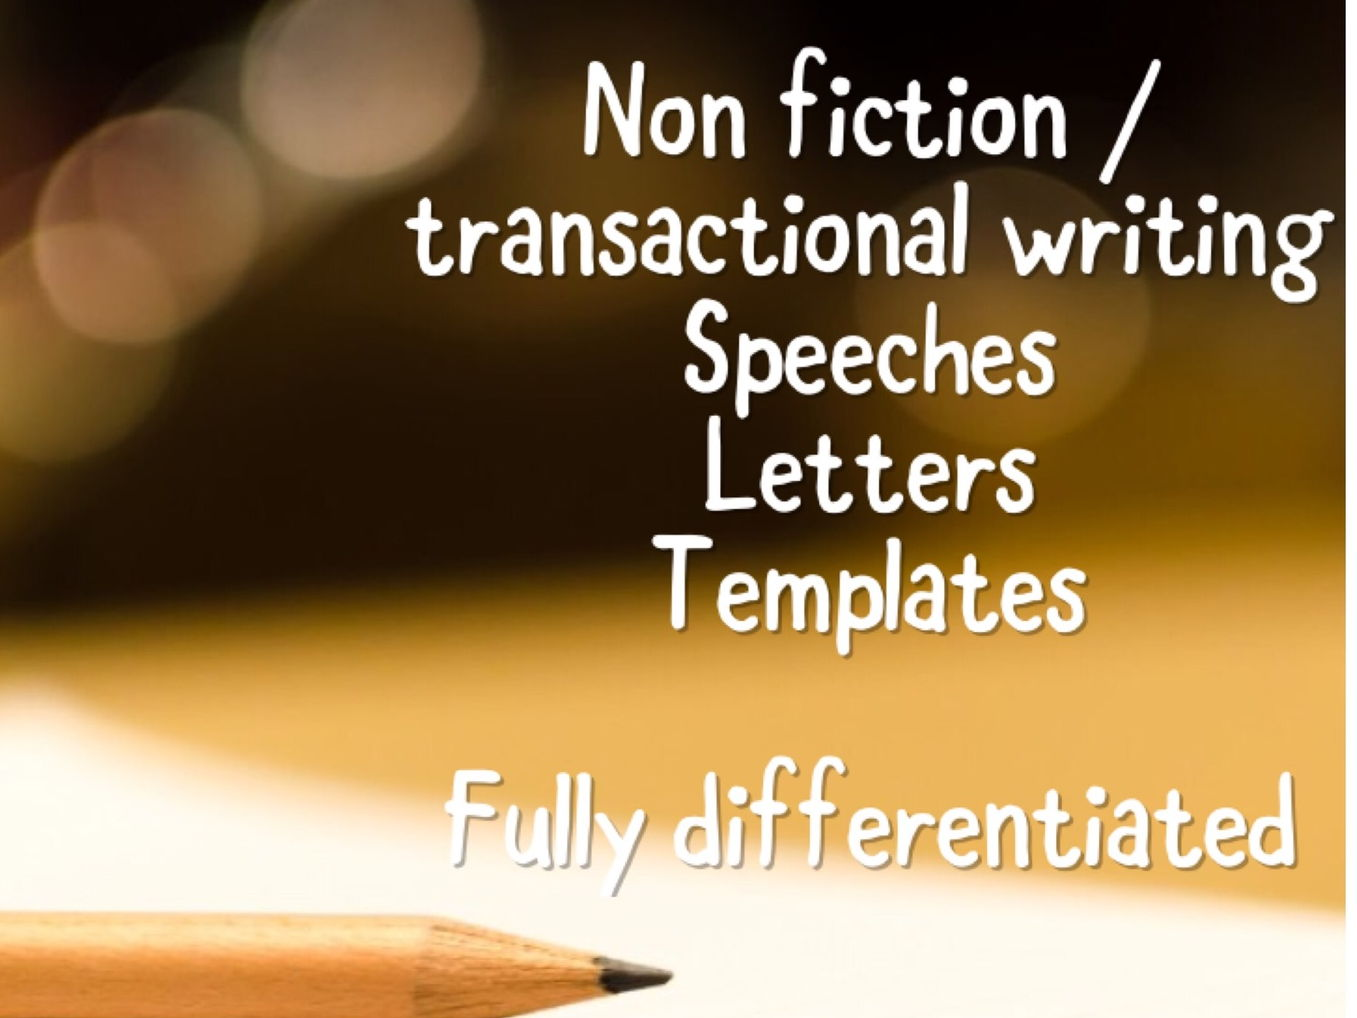 Non fiction transactional writing - differentiated Bundle